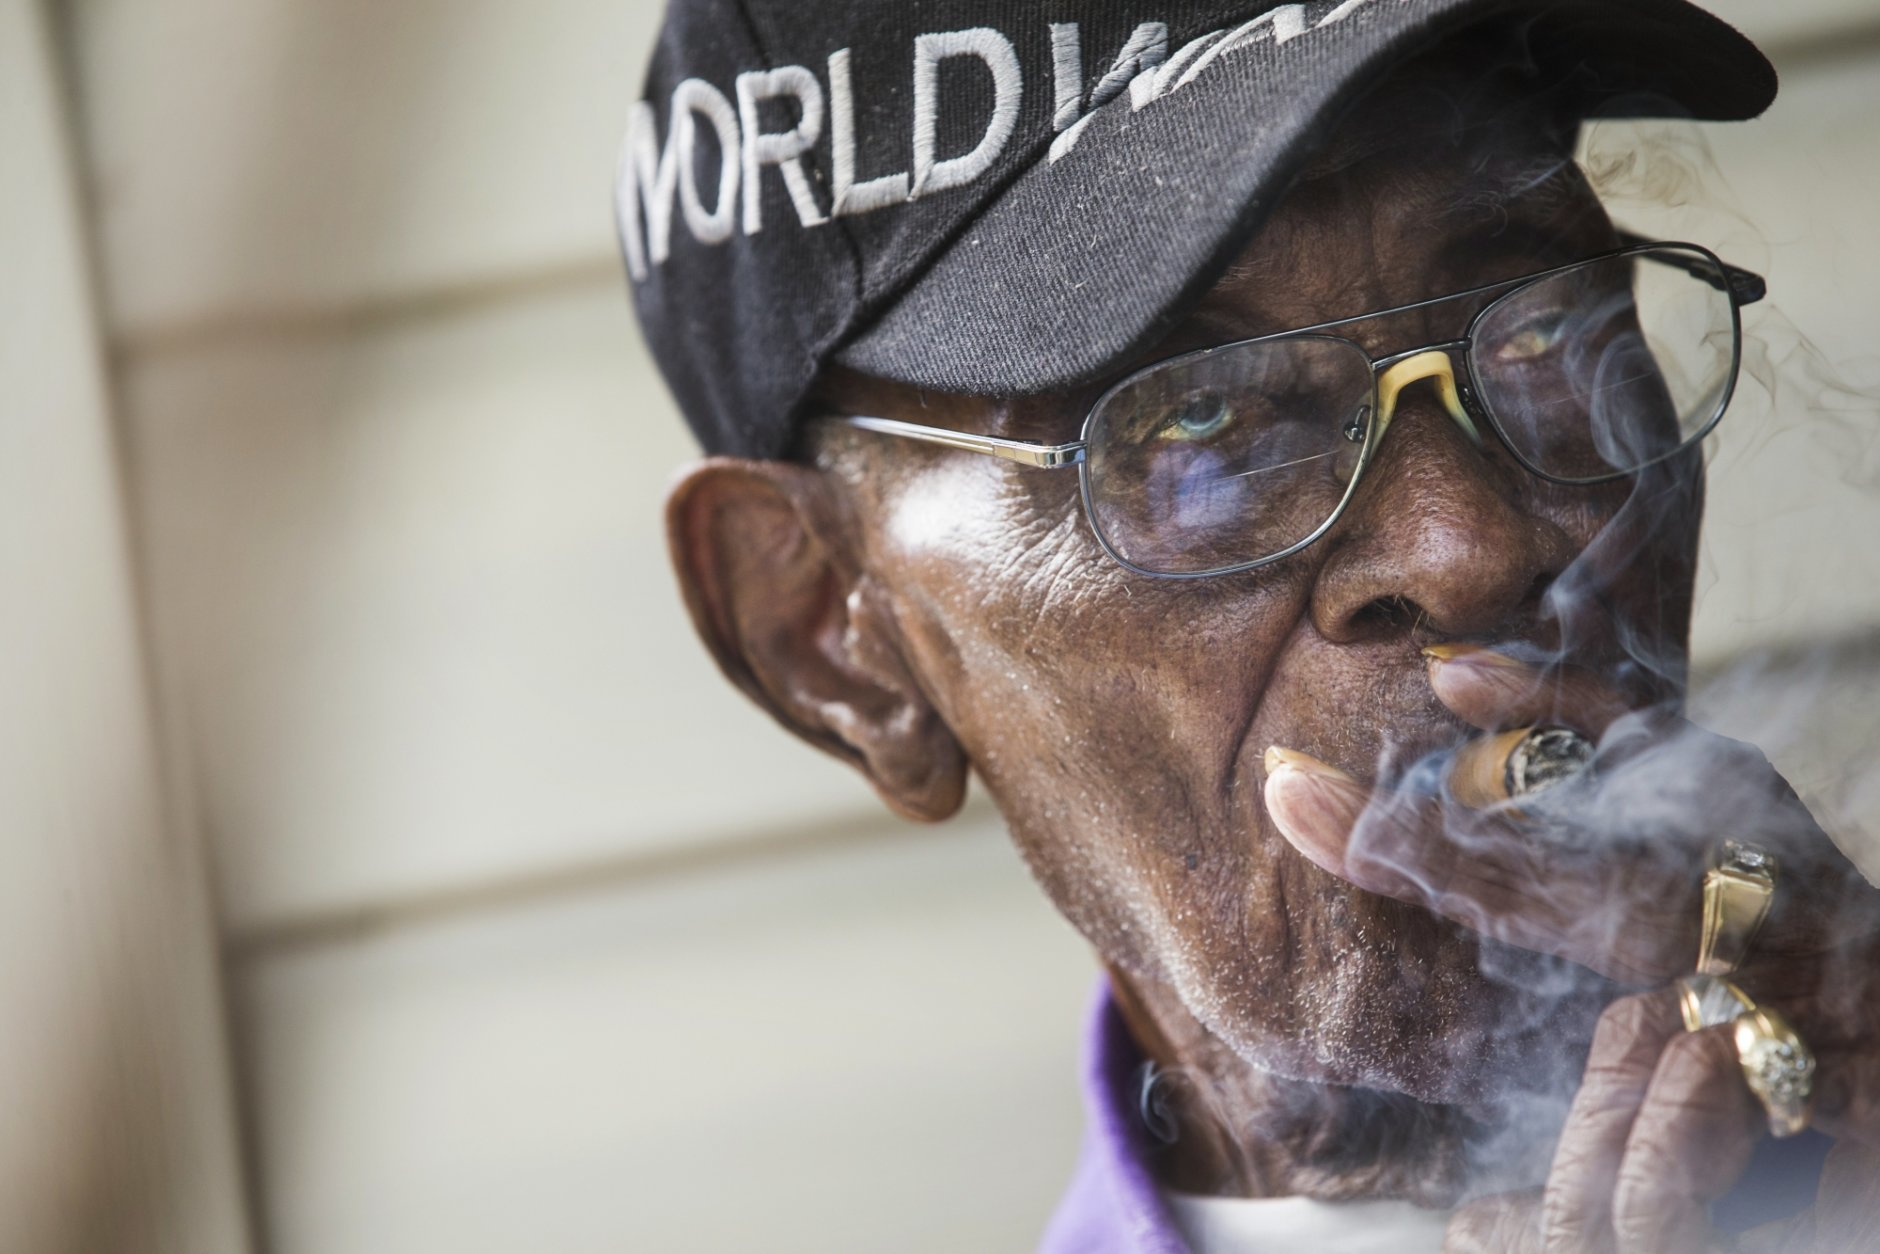 FILE - In this May 10, 2018 file photo, Richard Overton, America's oldest living WWII veteran, sits on his porch in Austin, Texas. Overton, who died Dec. 27, 2018, was remembered Saturday, Jan. 12, 2019 during his funeral in Austin for his love of country and joy for life. (Amanda Voisard/Austin American-Statesman via AP)